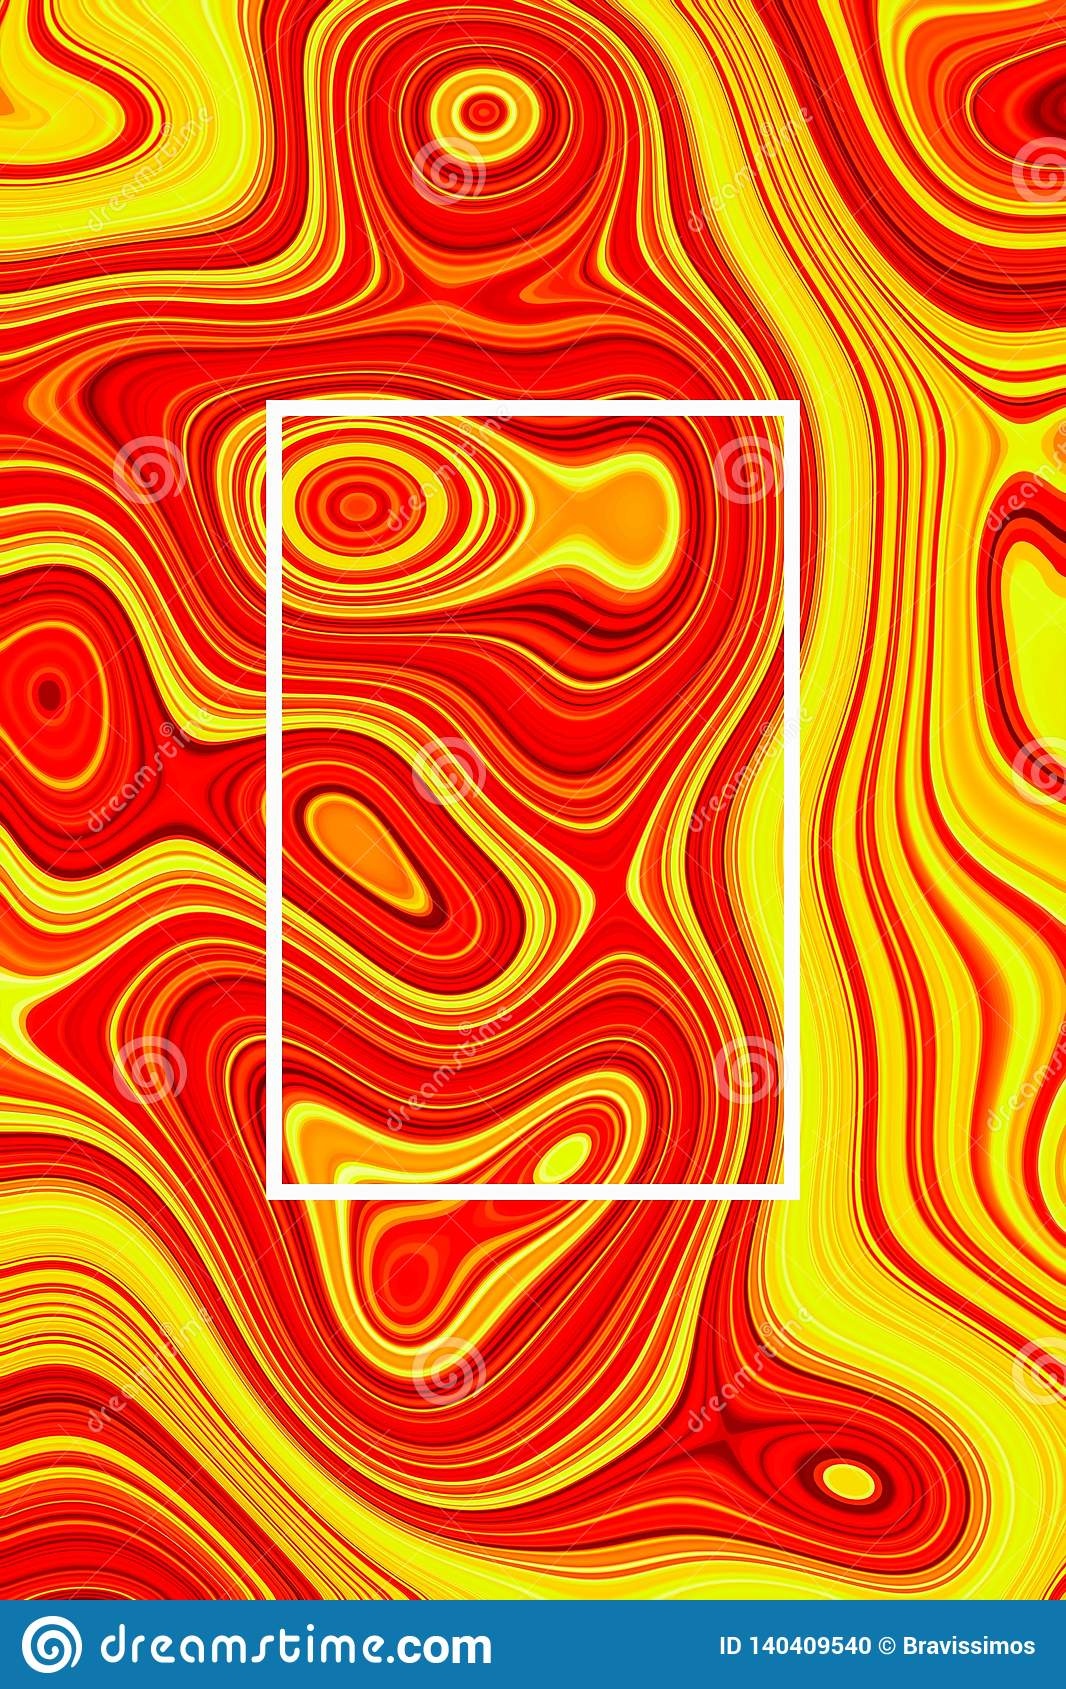 Liquid Abstract Orange Poster And Lava Background Wallpaper